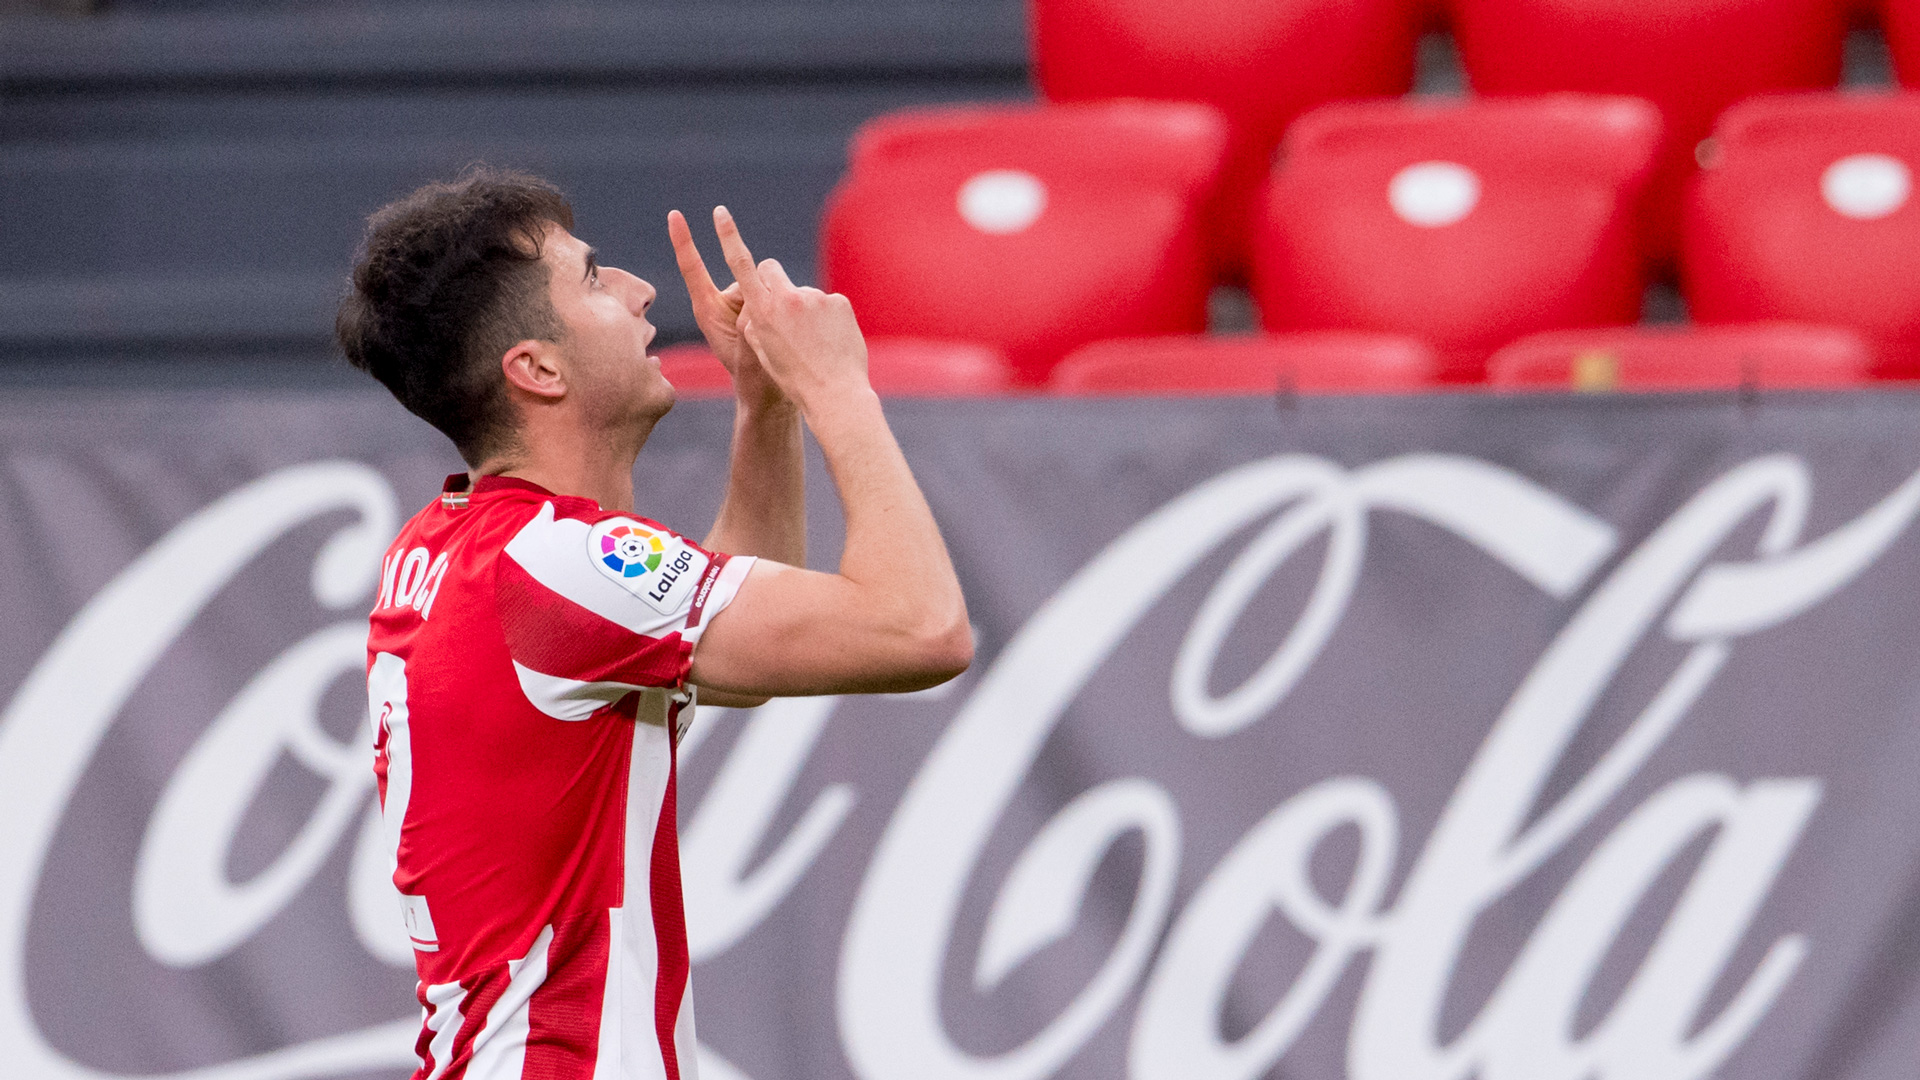 Jon Morcillo off the mark for Athletic